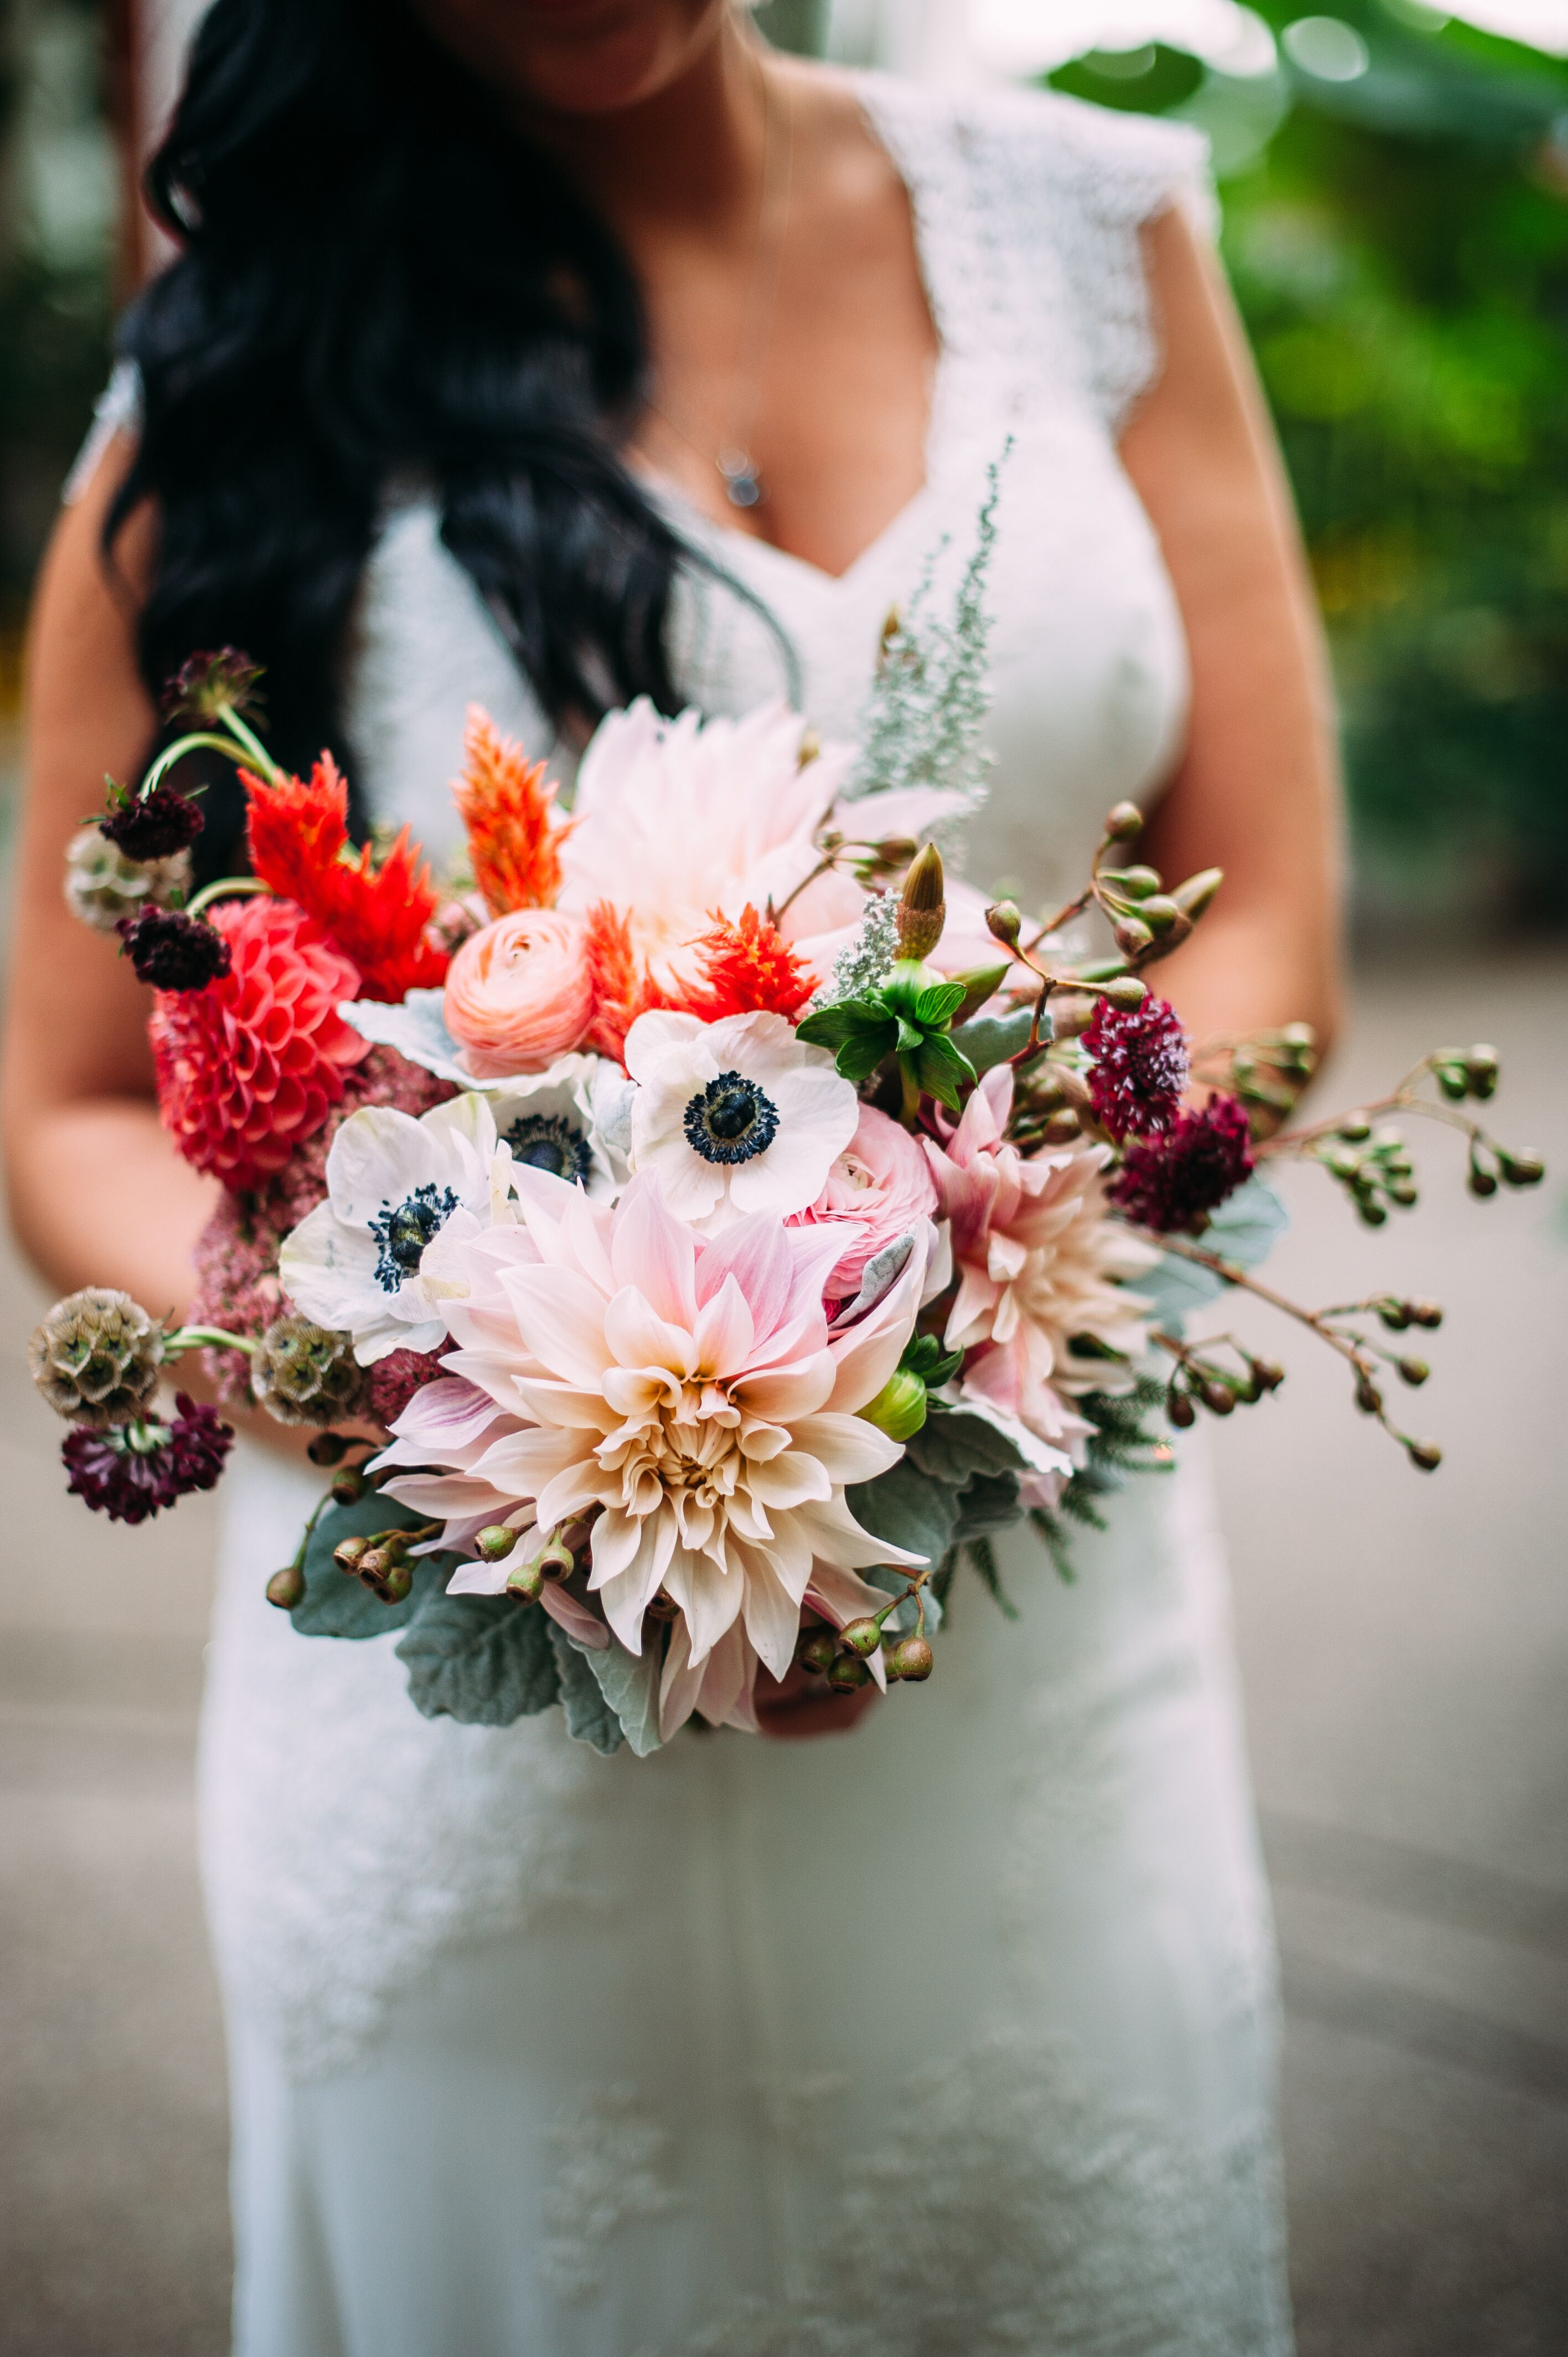 Bride With Colorful Flower Bouquet